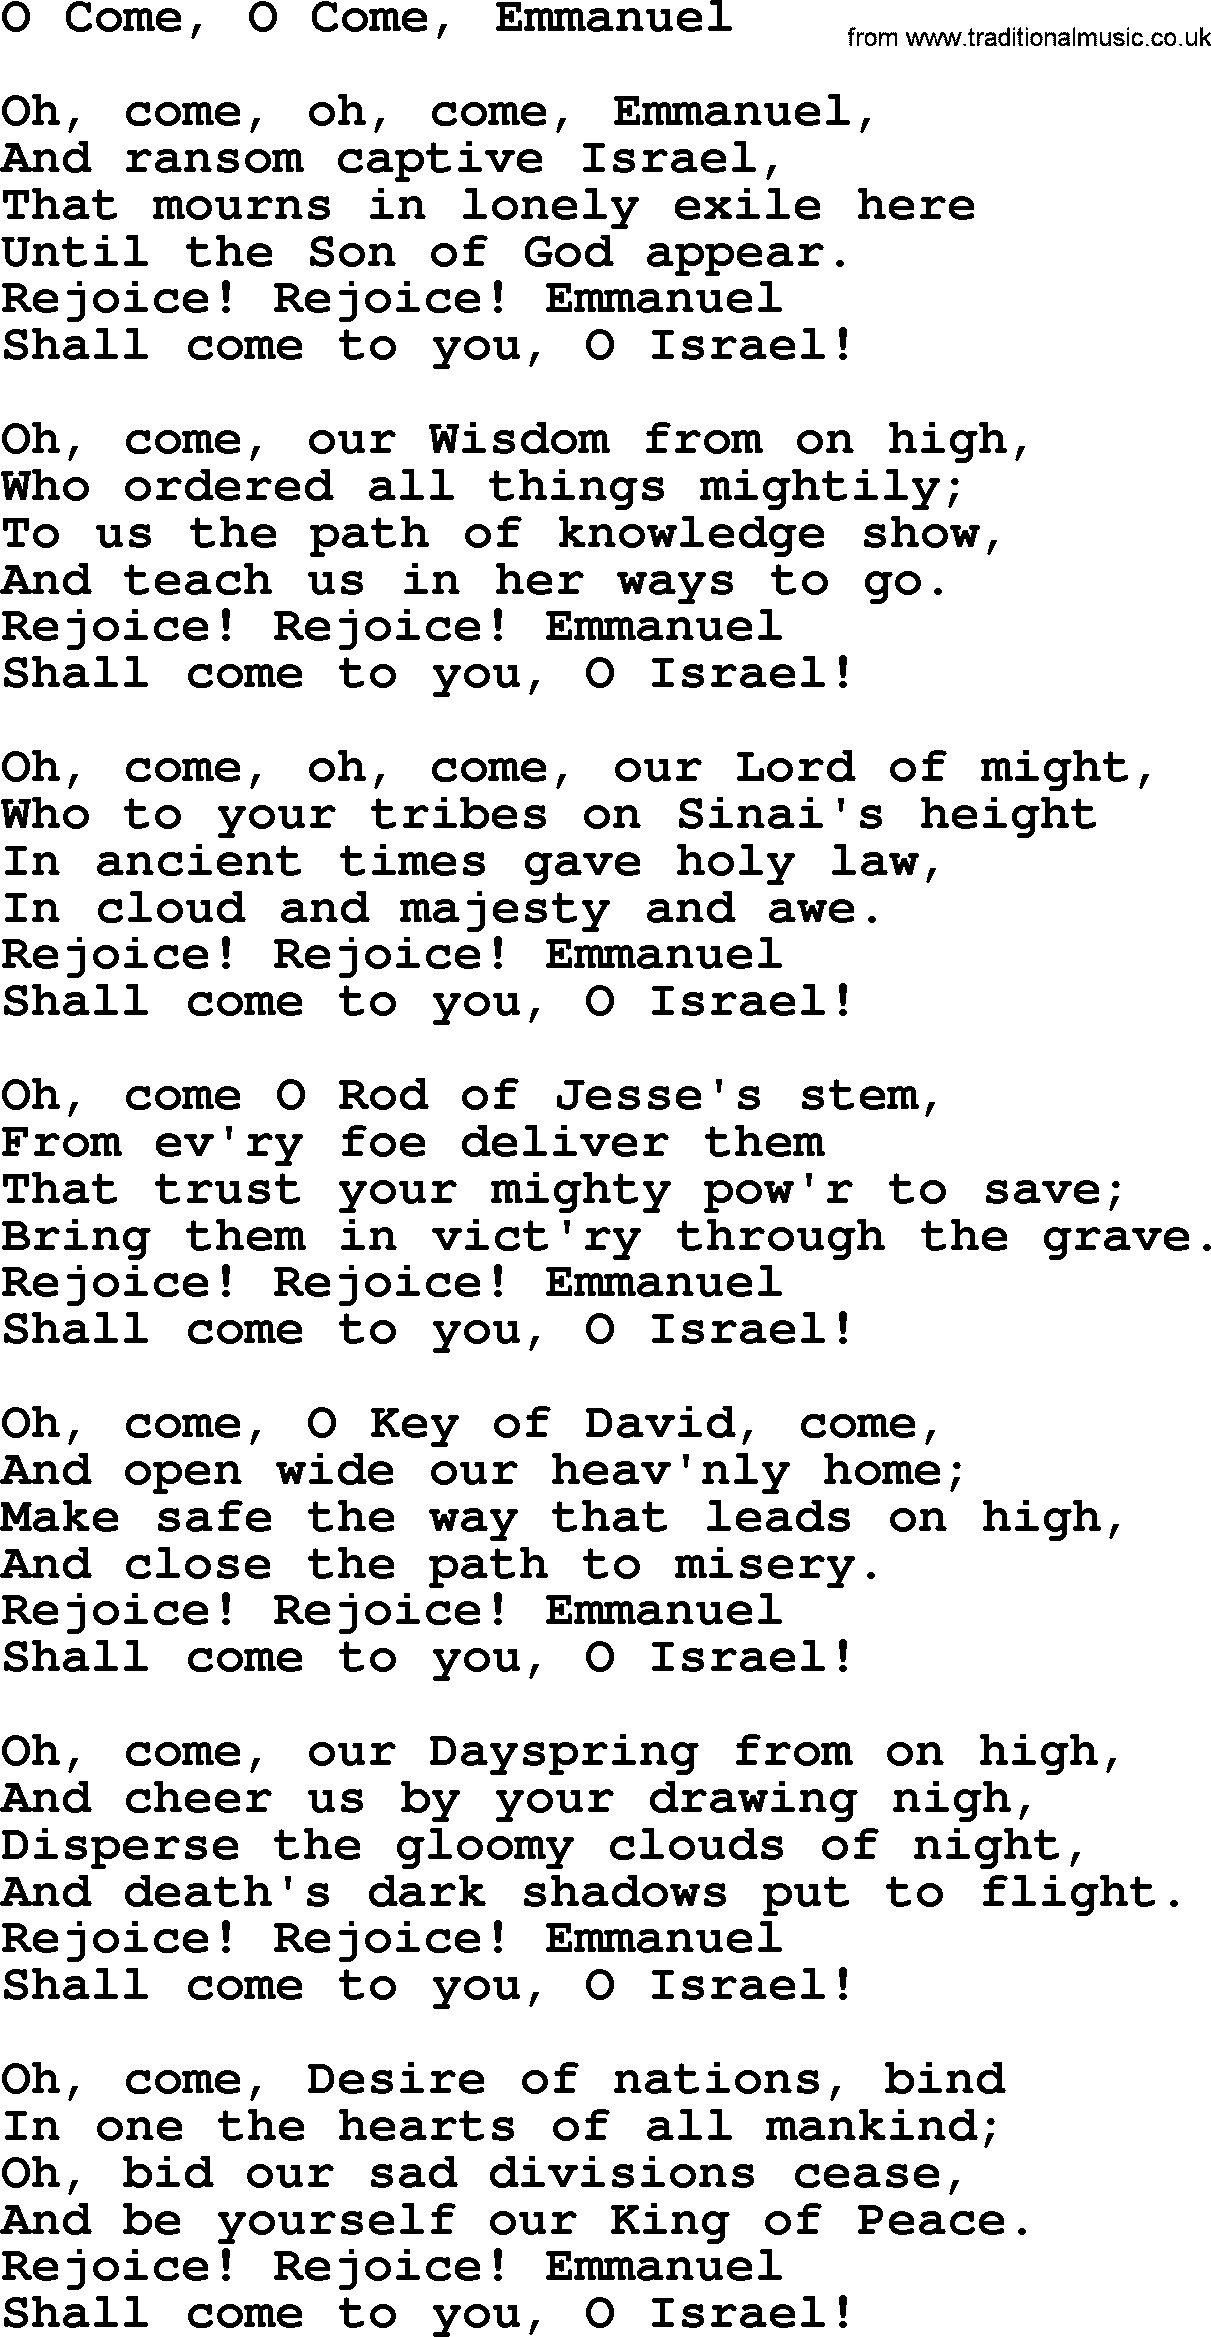 Joan Baez Song O Come O Come Emmanuel Lyrics